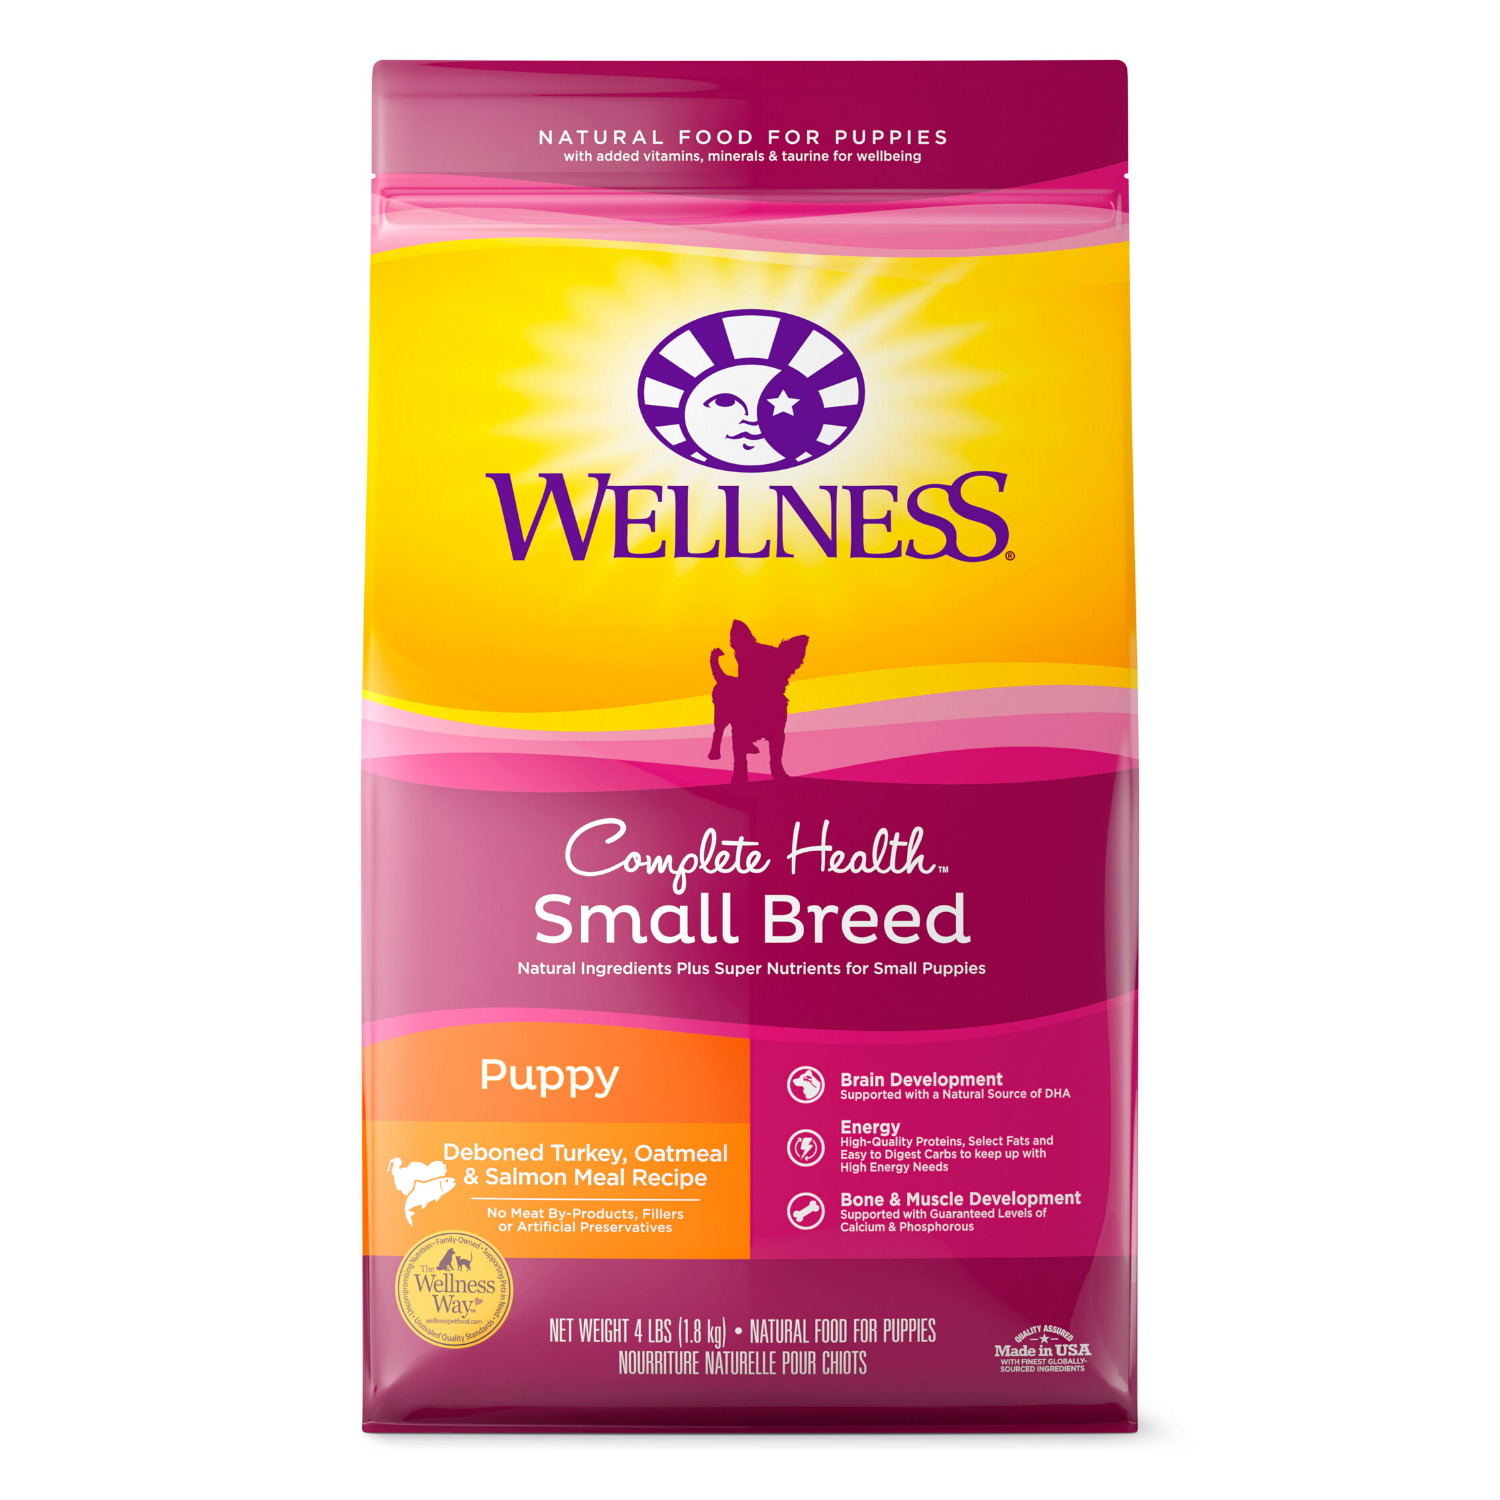 Wellness Complete Health for Small Breed Puppy - (Deboned Turkey, Oatmeal and Salmon) - 1.81kg